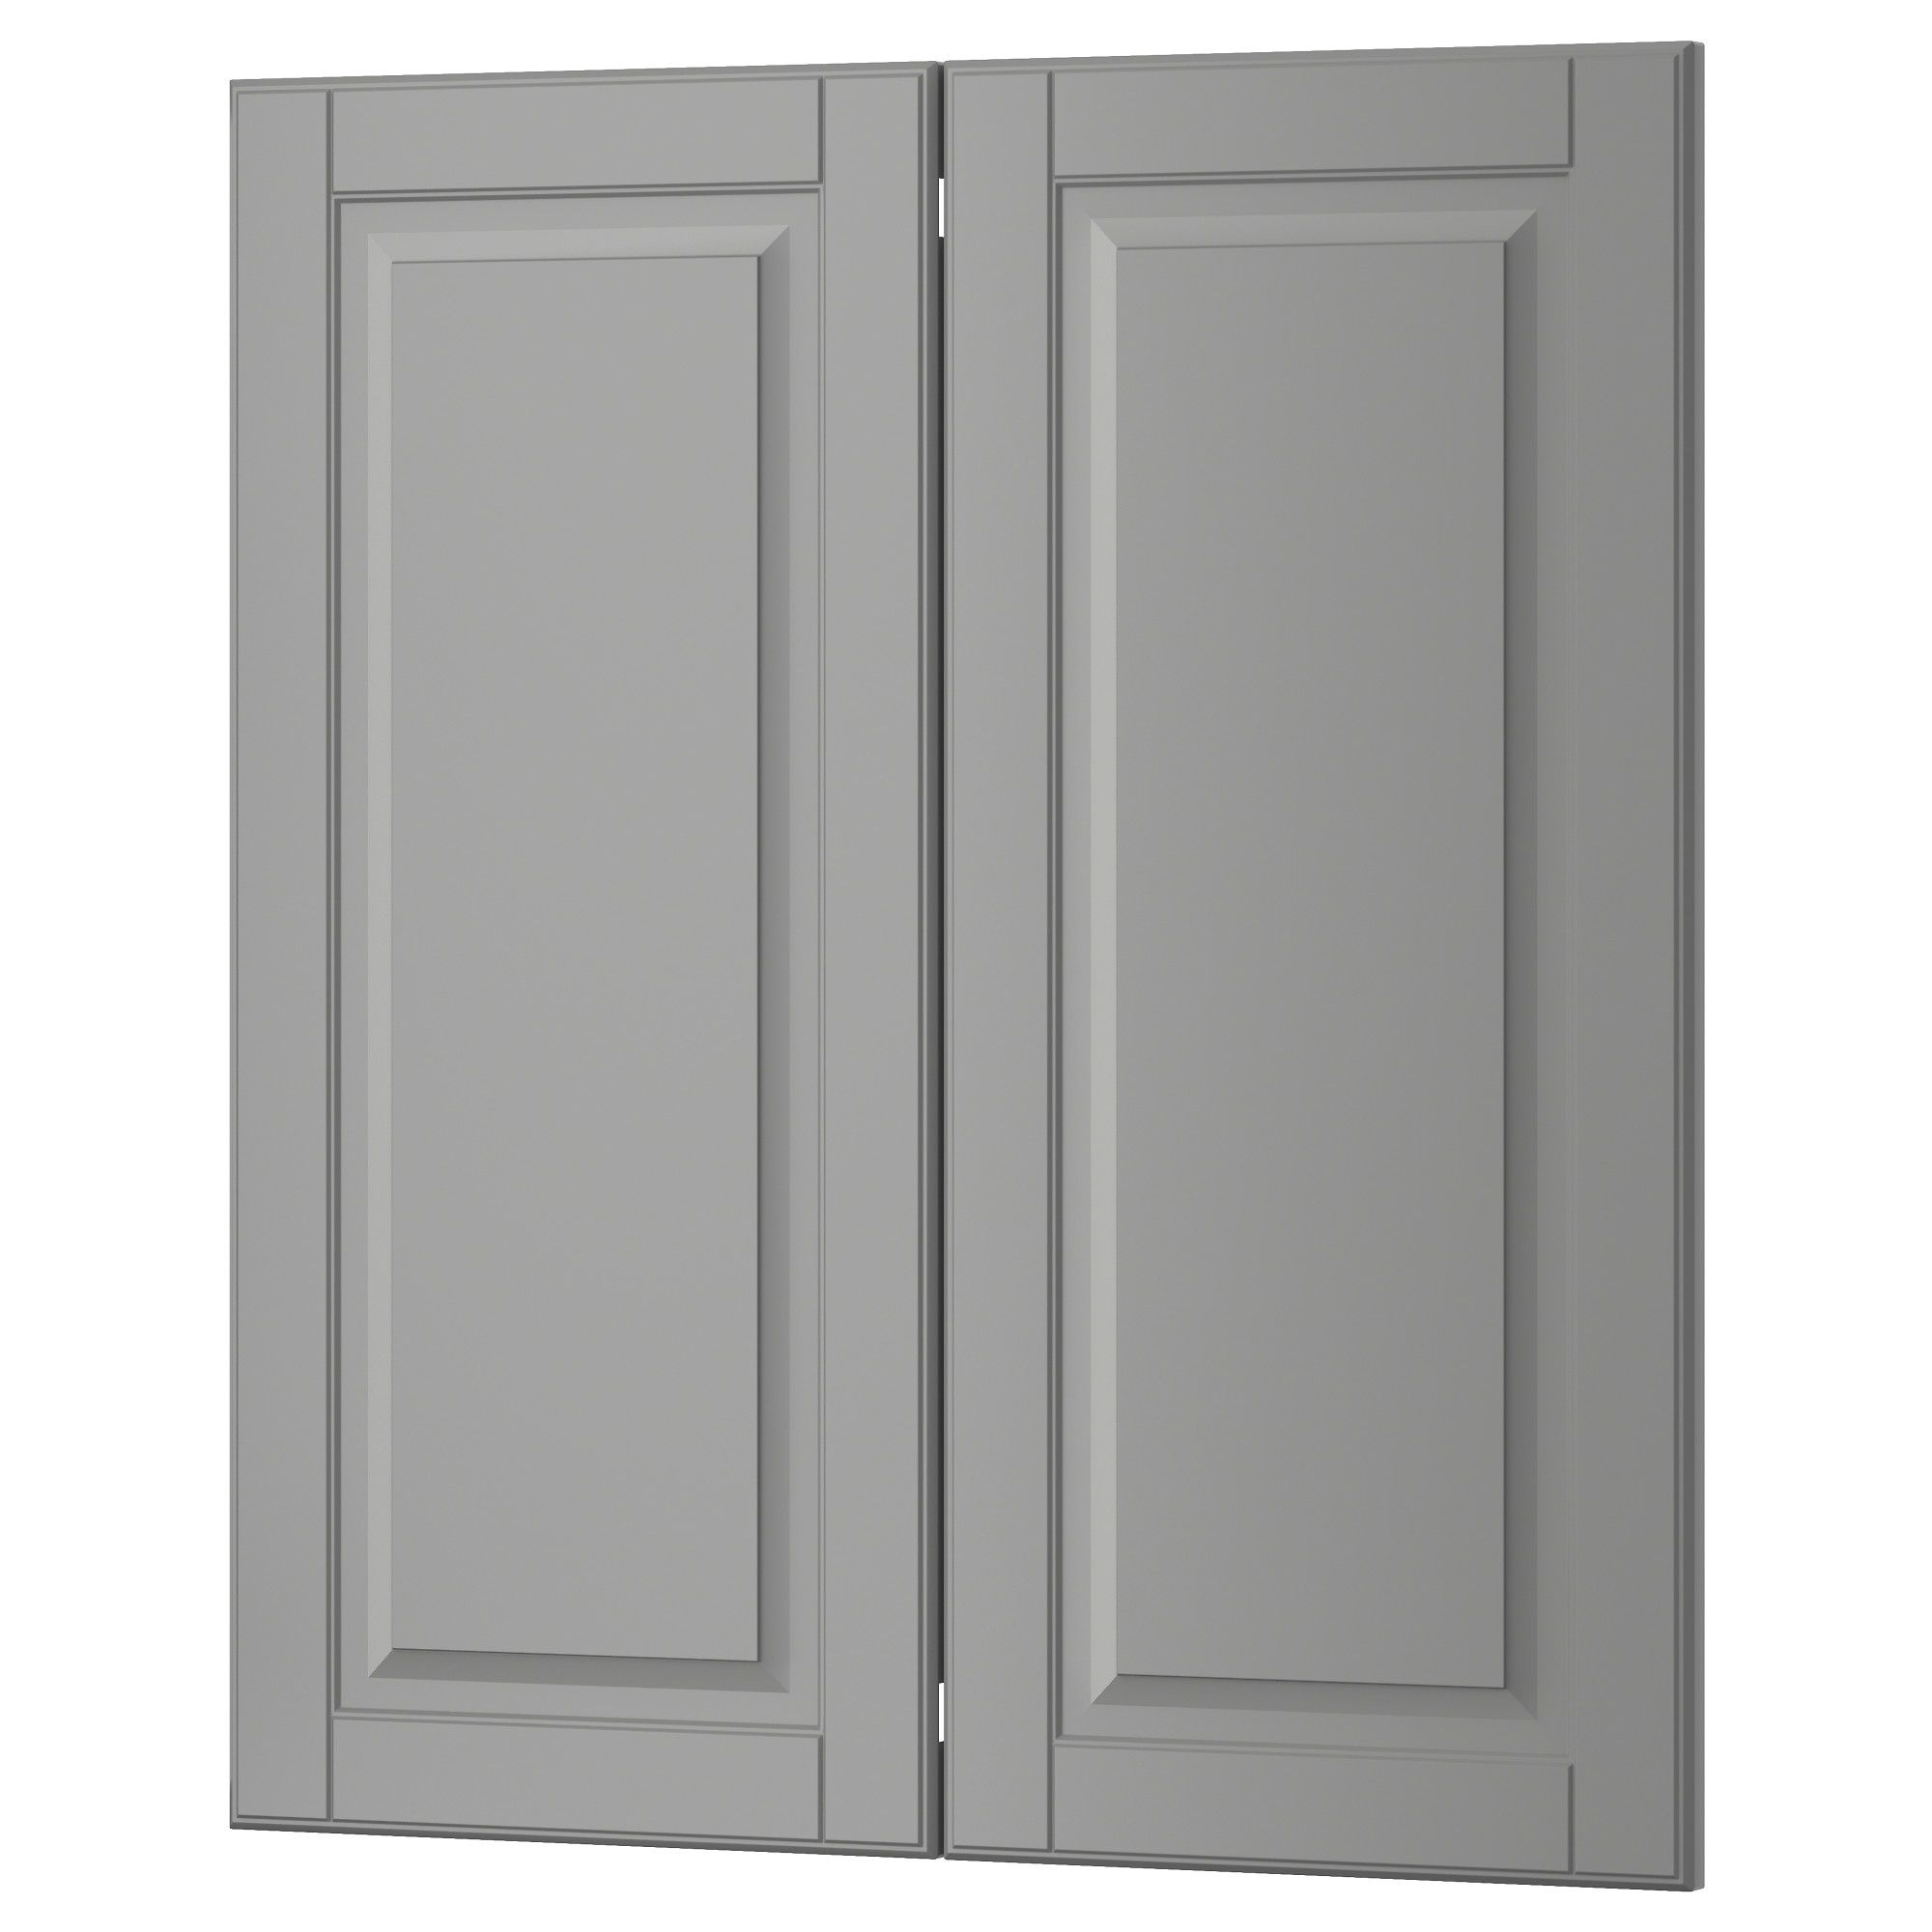 Kitchen Cabinets London Ontario: BODBYN 2-p Door/corner Base Cabinet Set Gray